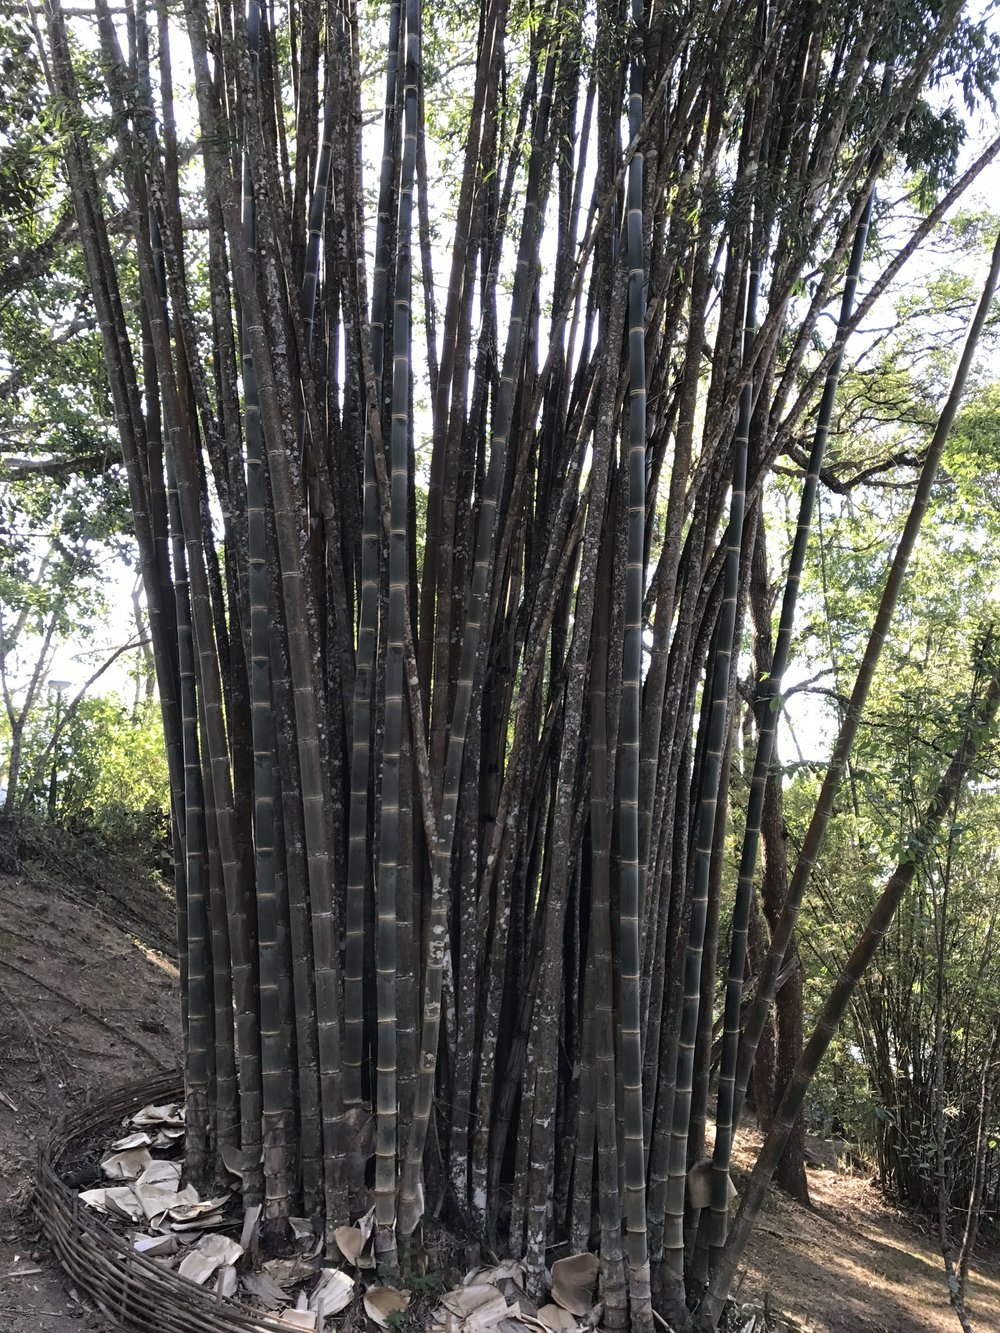 Last picture in the Bhubing Palace gardens - giant bamboo!